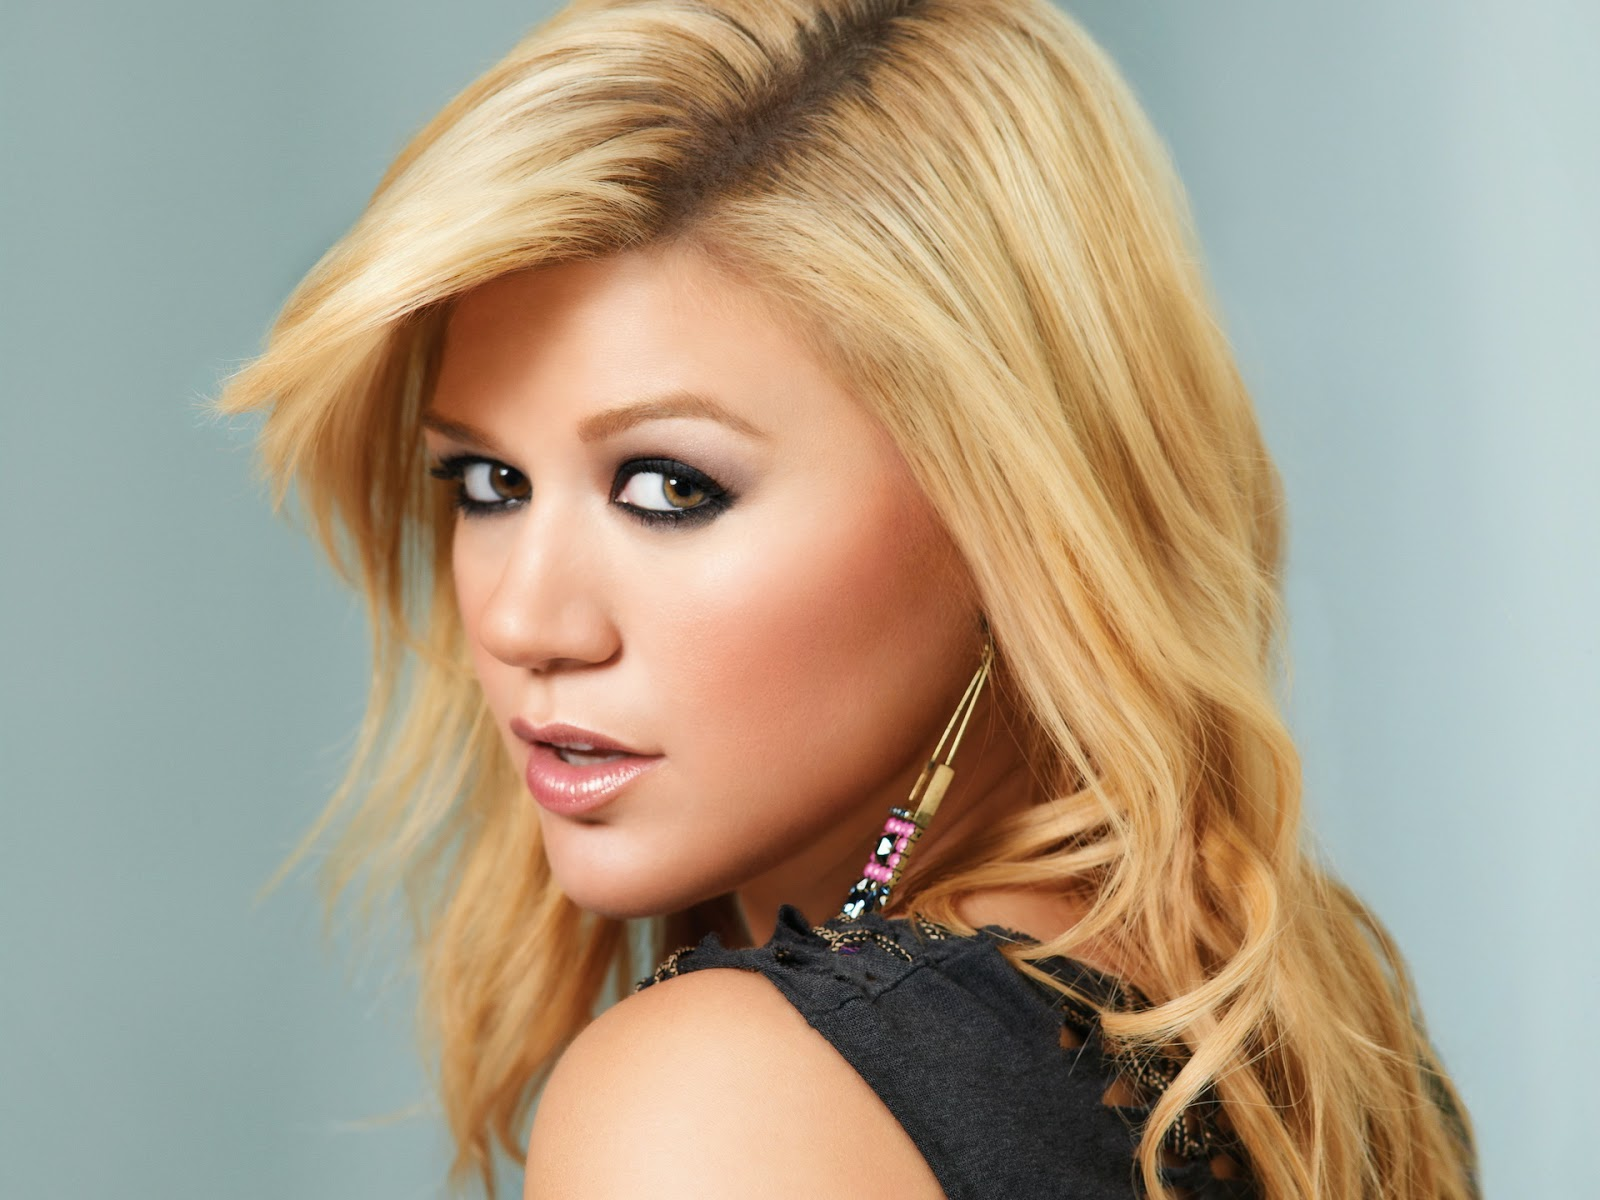 celebrity hd wallpapers  u2014 kelly clarkson latest hd